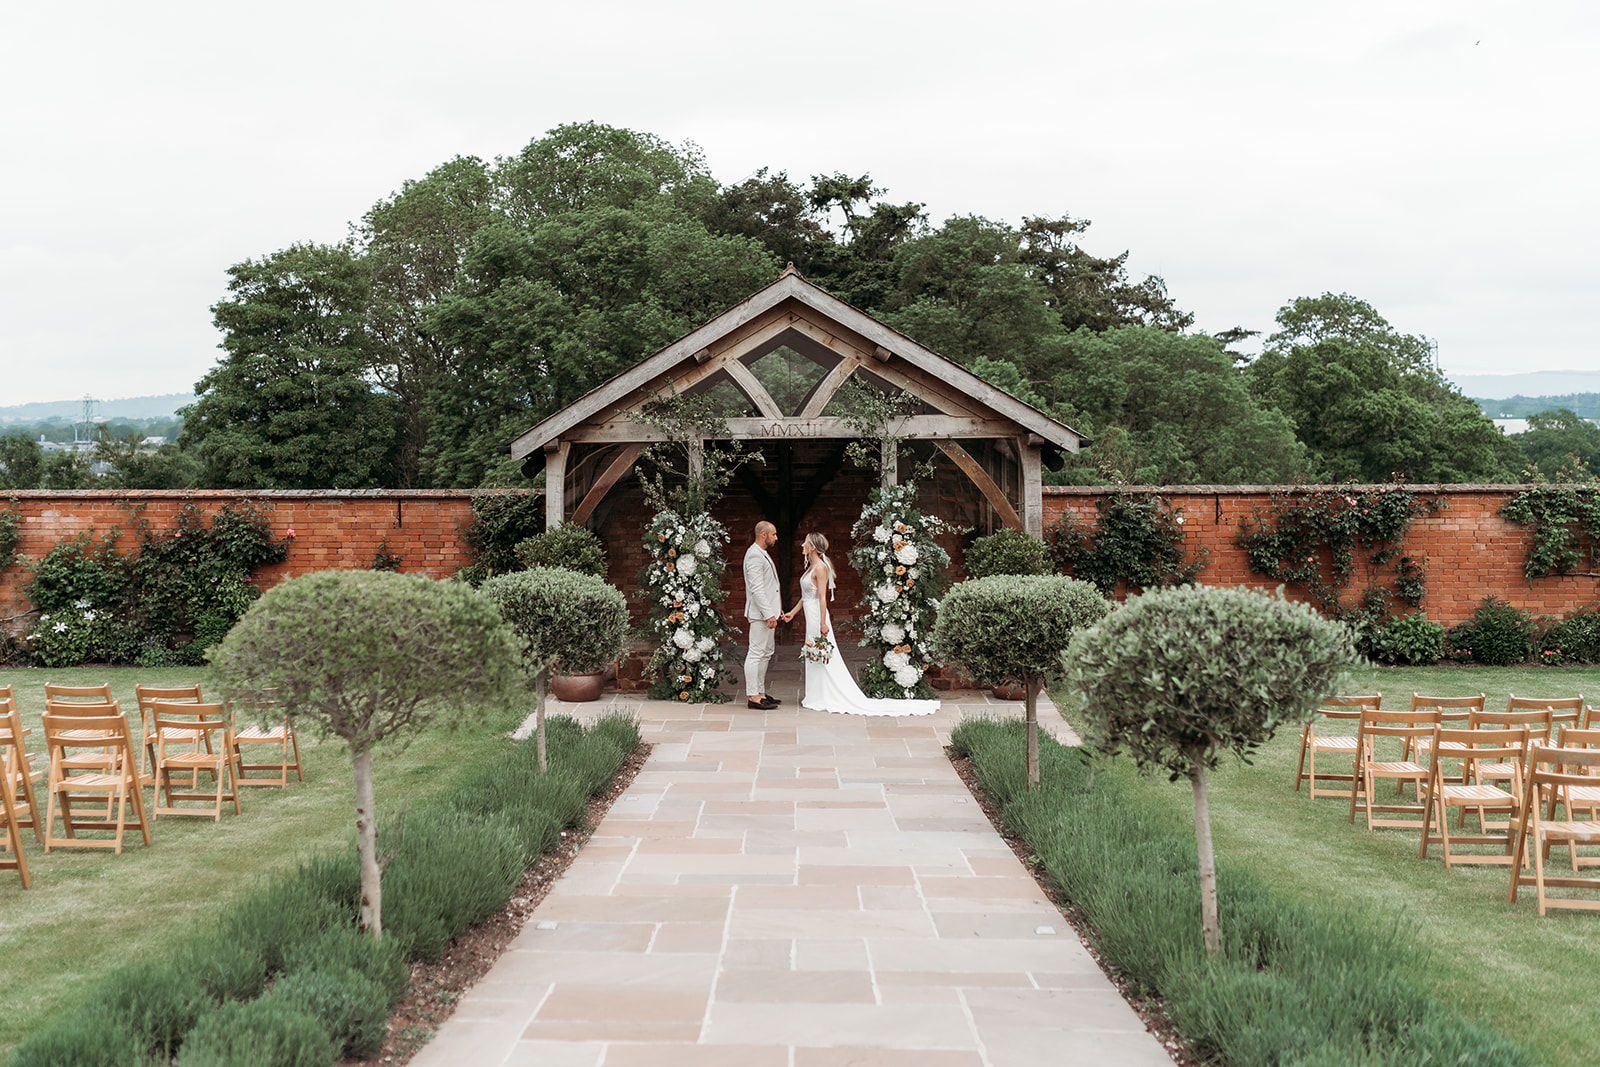 The Walled Garden | Image by Kamila Nowak Photography